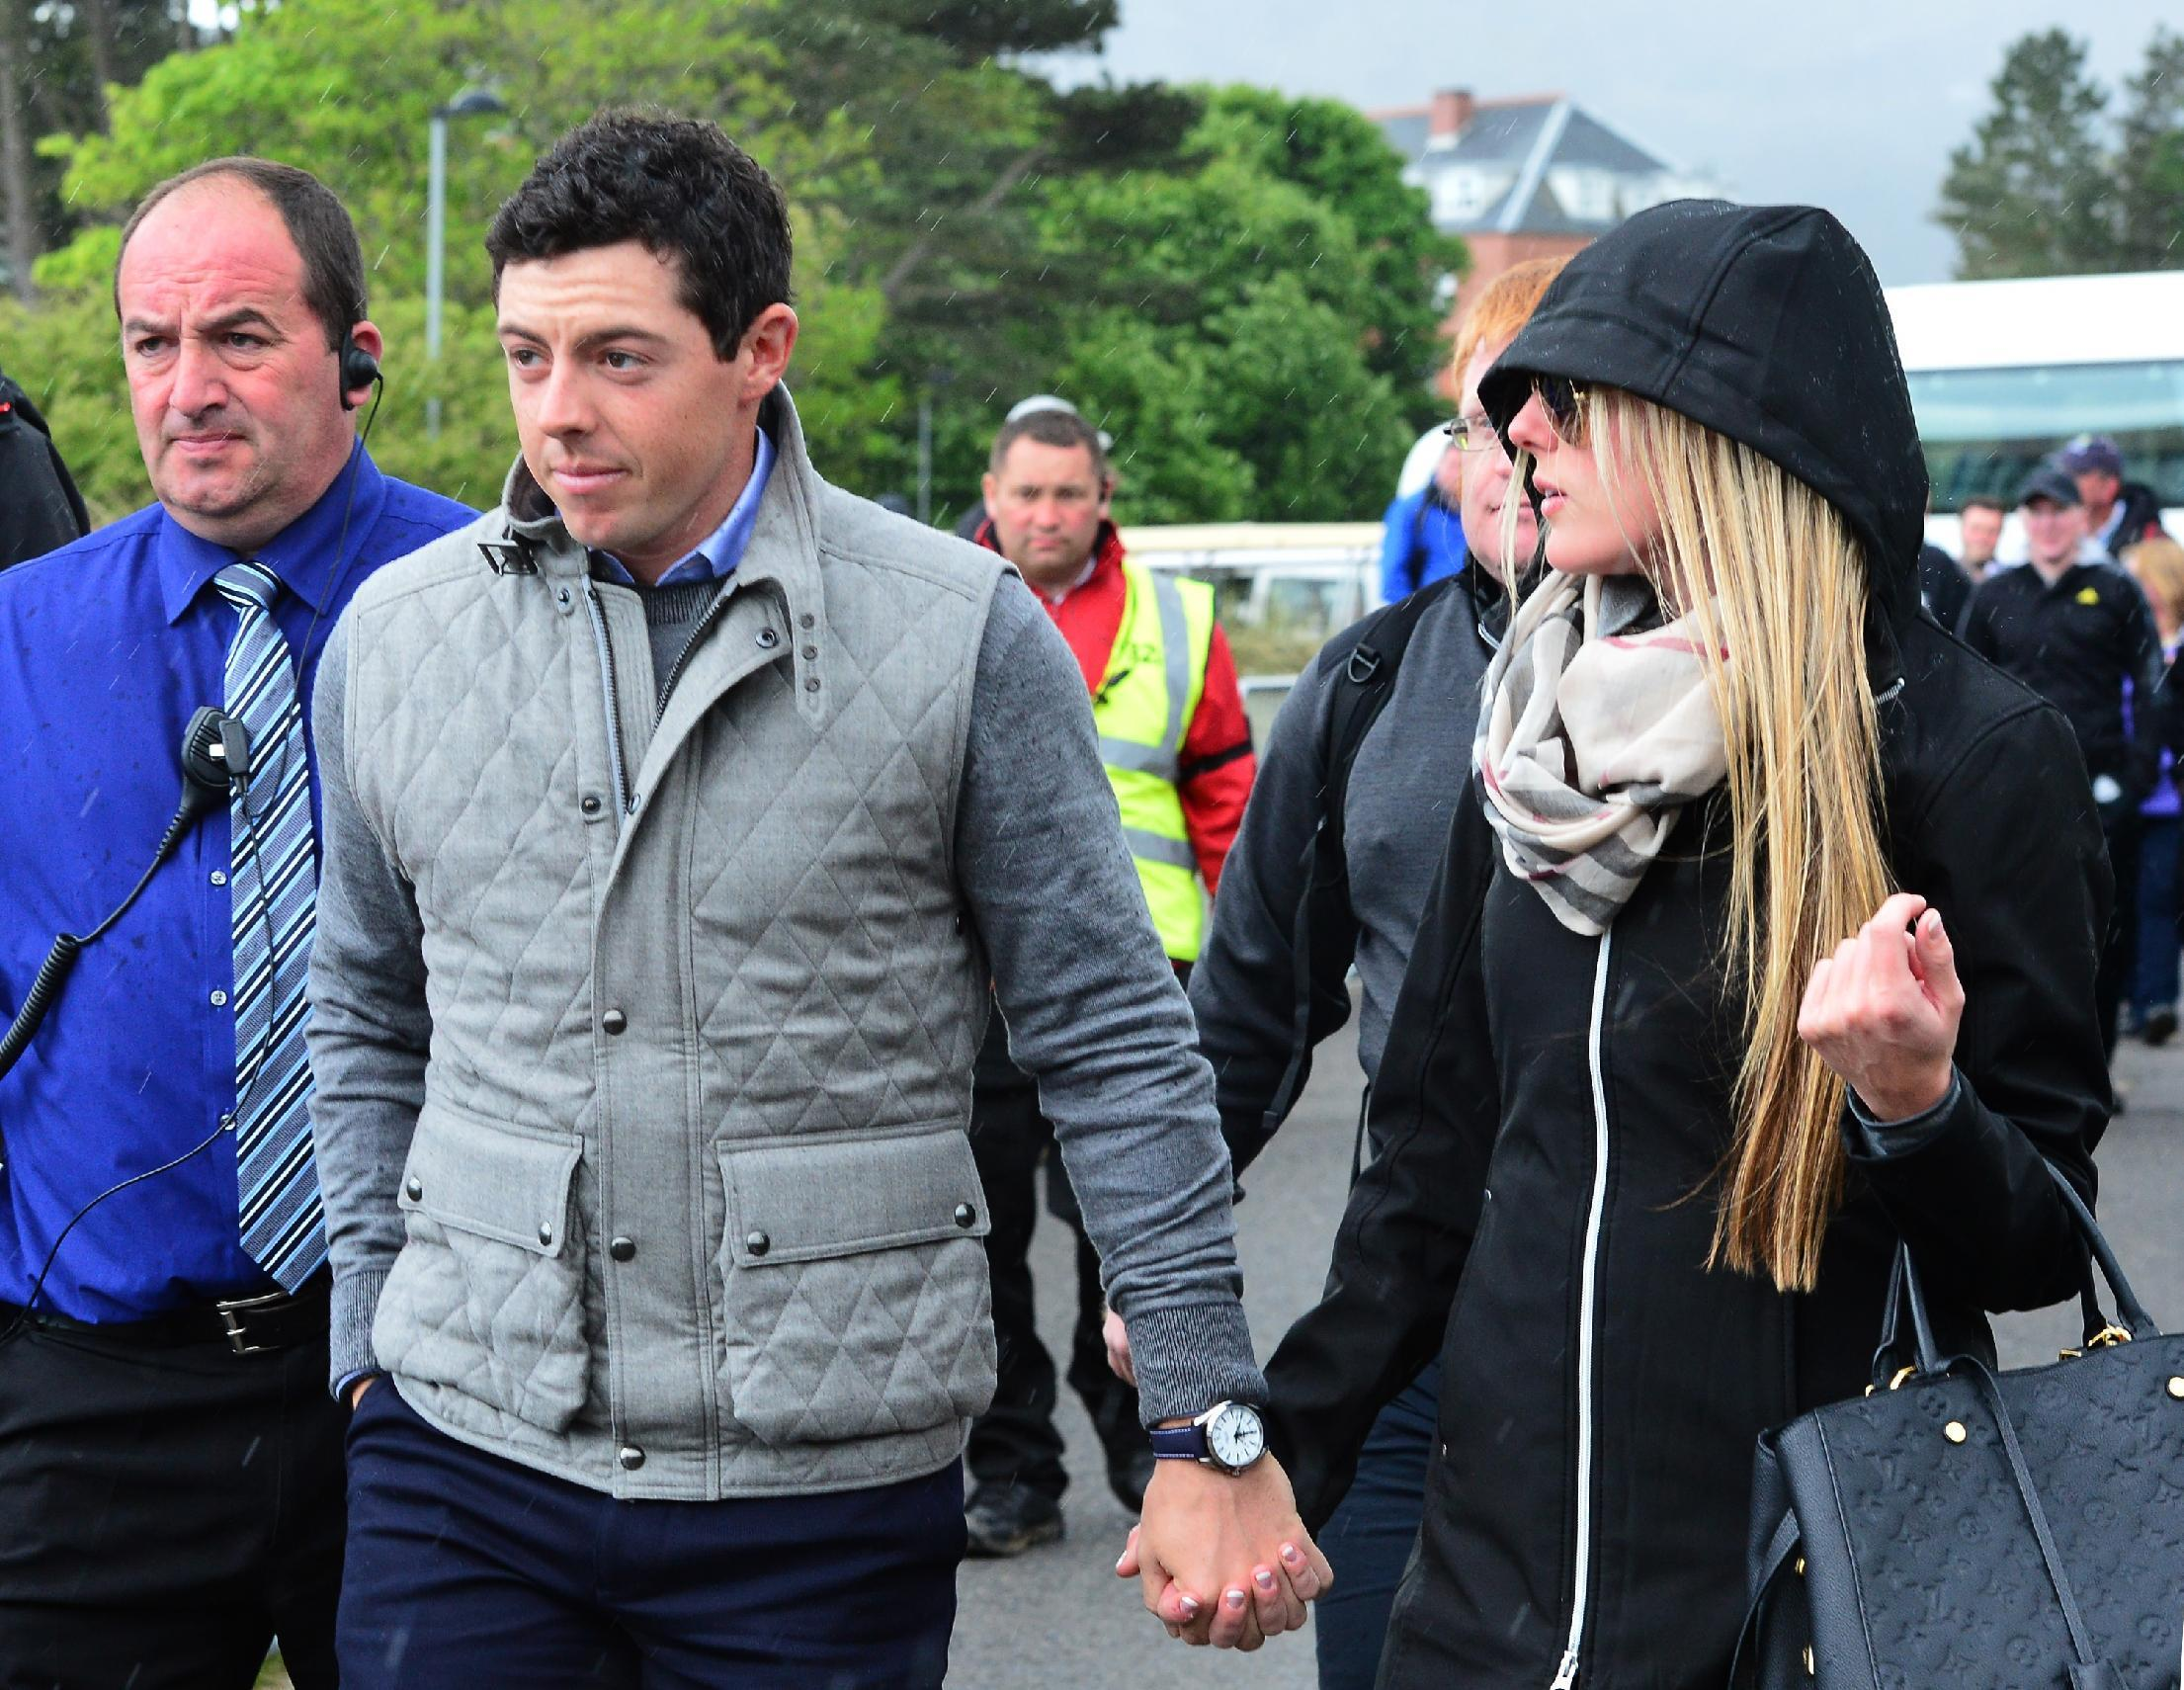 Rory McIlroy, girlfriend Erica Stoll appear together at Irish Open